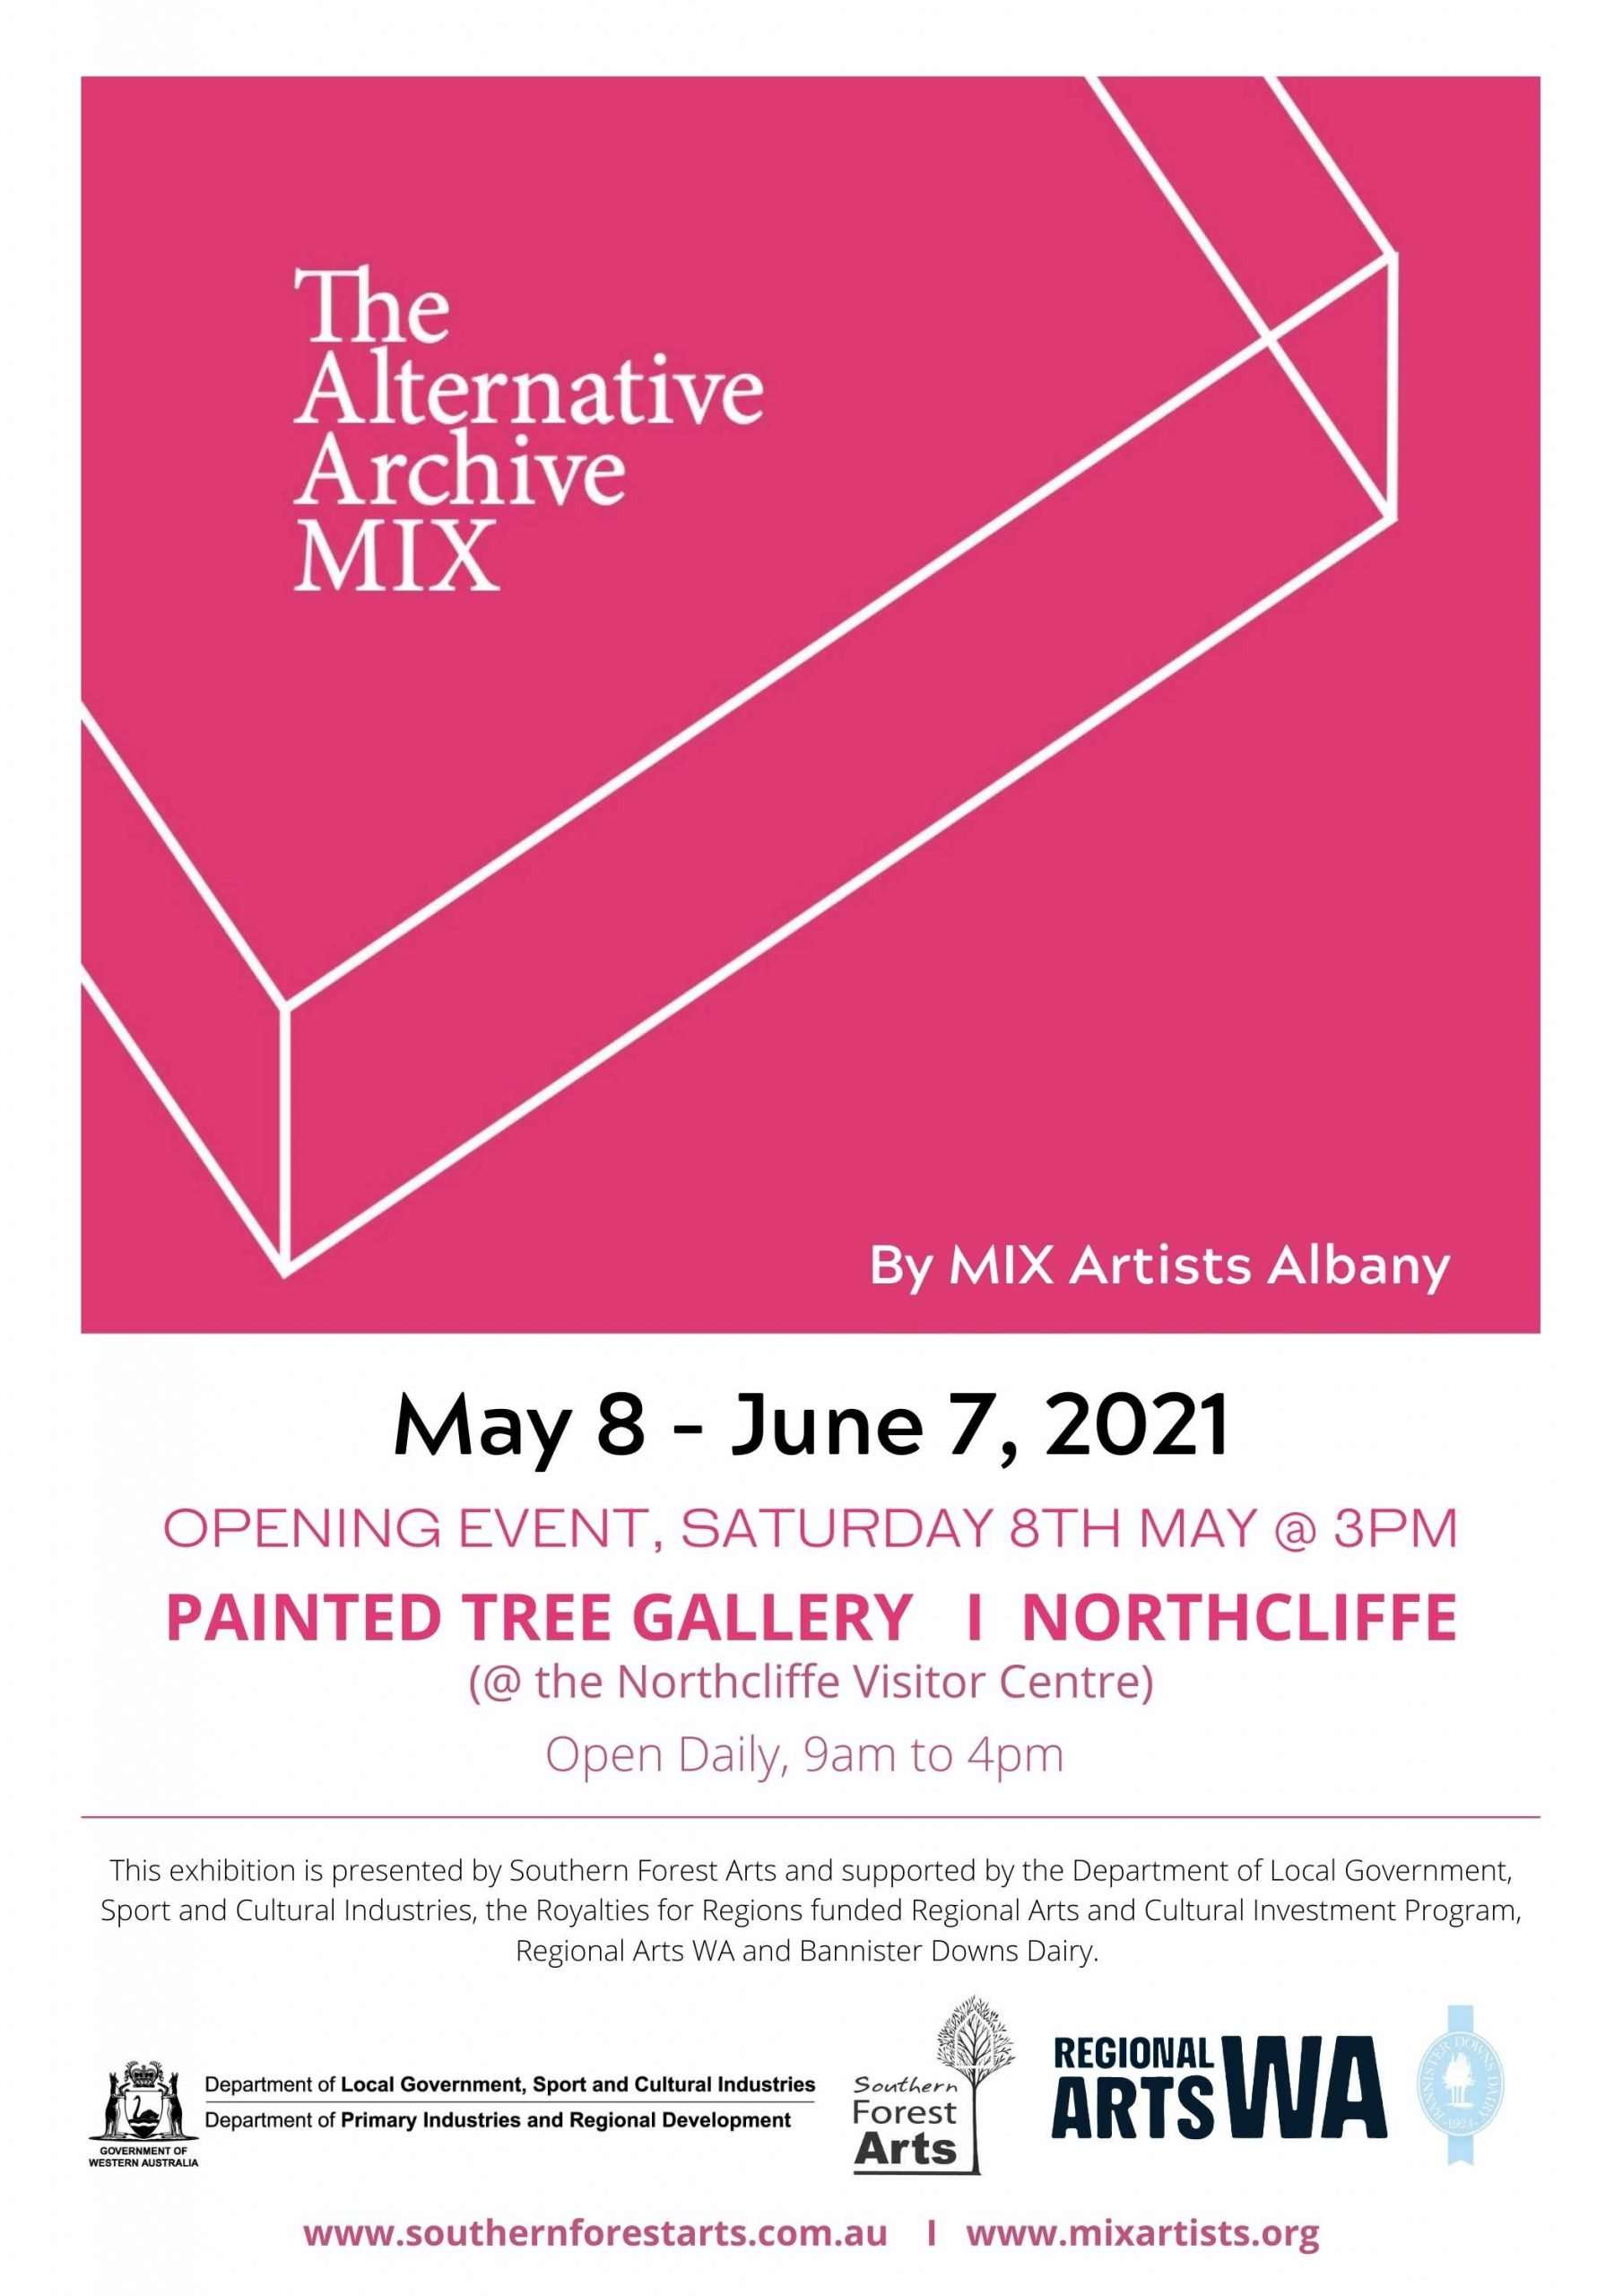 The Alternative Archive - Mix poster for exhibition at The Painted Tree gallery, Northcliffe, 2021